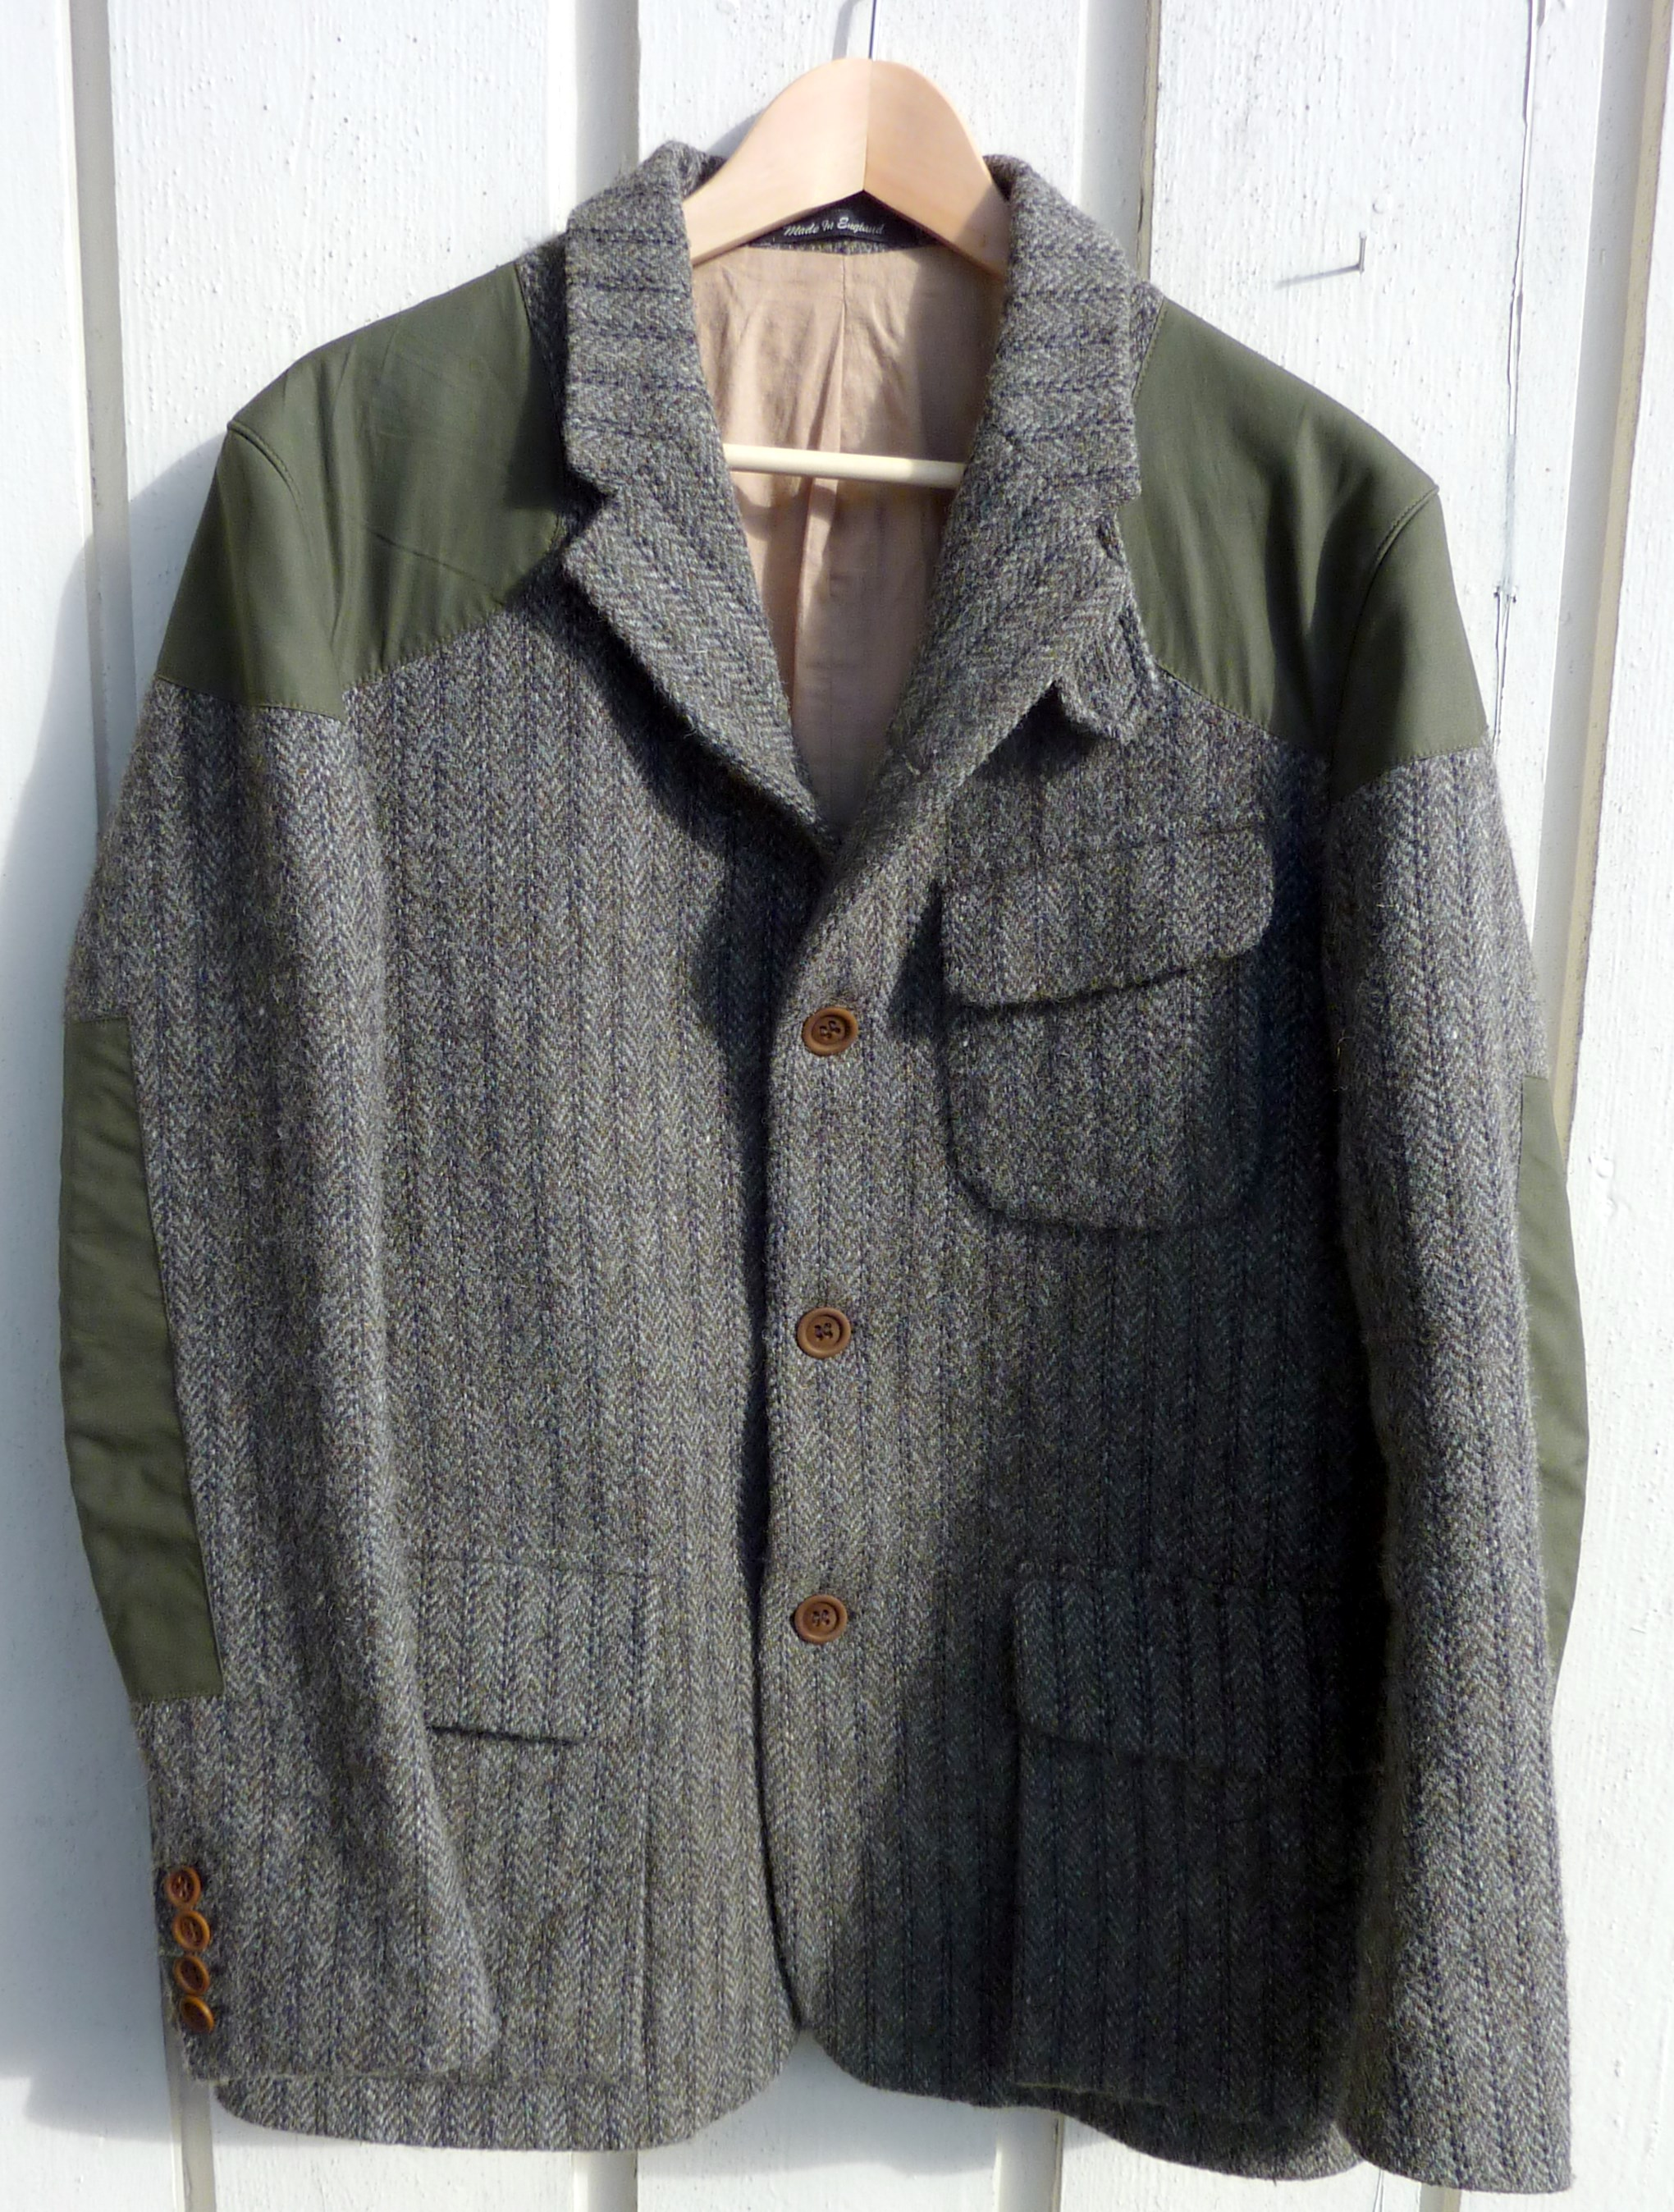 c2a0a805187d7f Outerwear  Nigel Cabourn Mallory jacket in Harris Tweed - Well ...